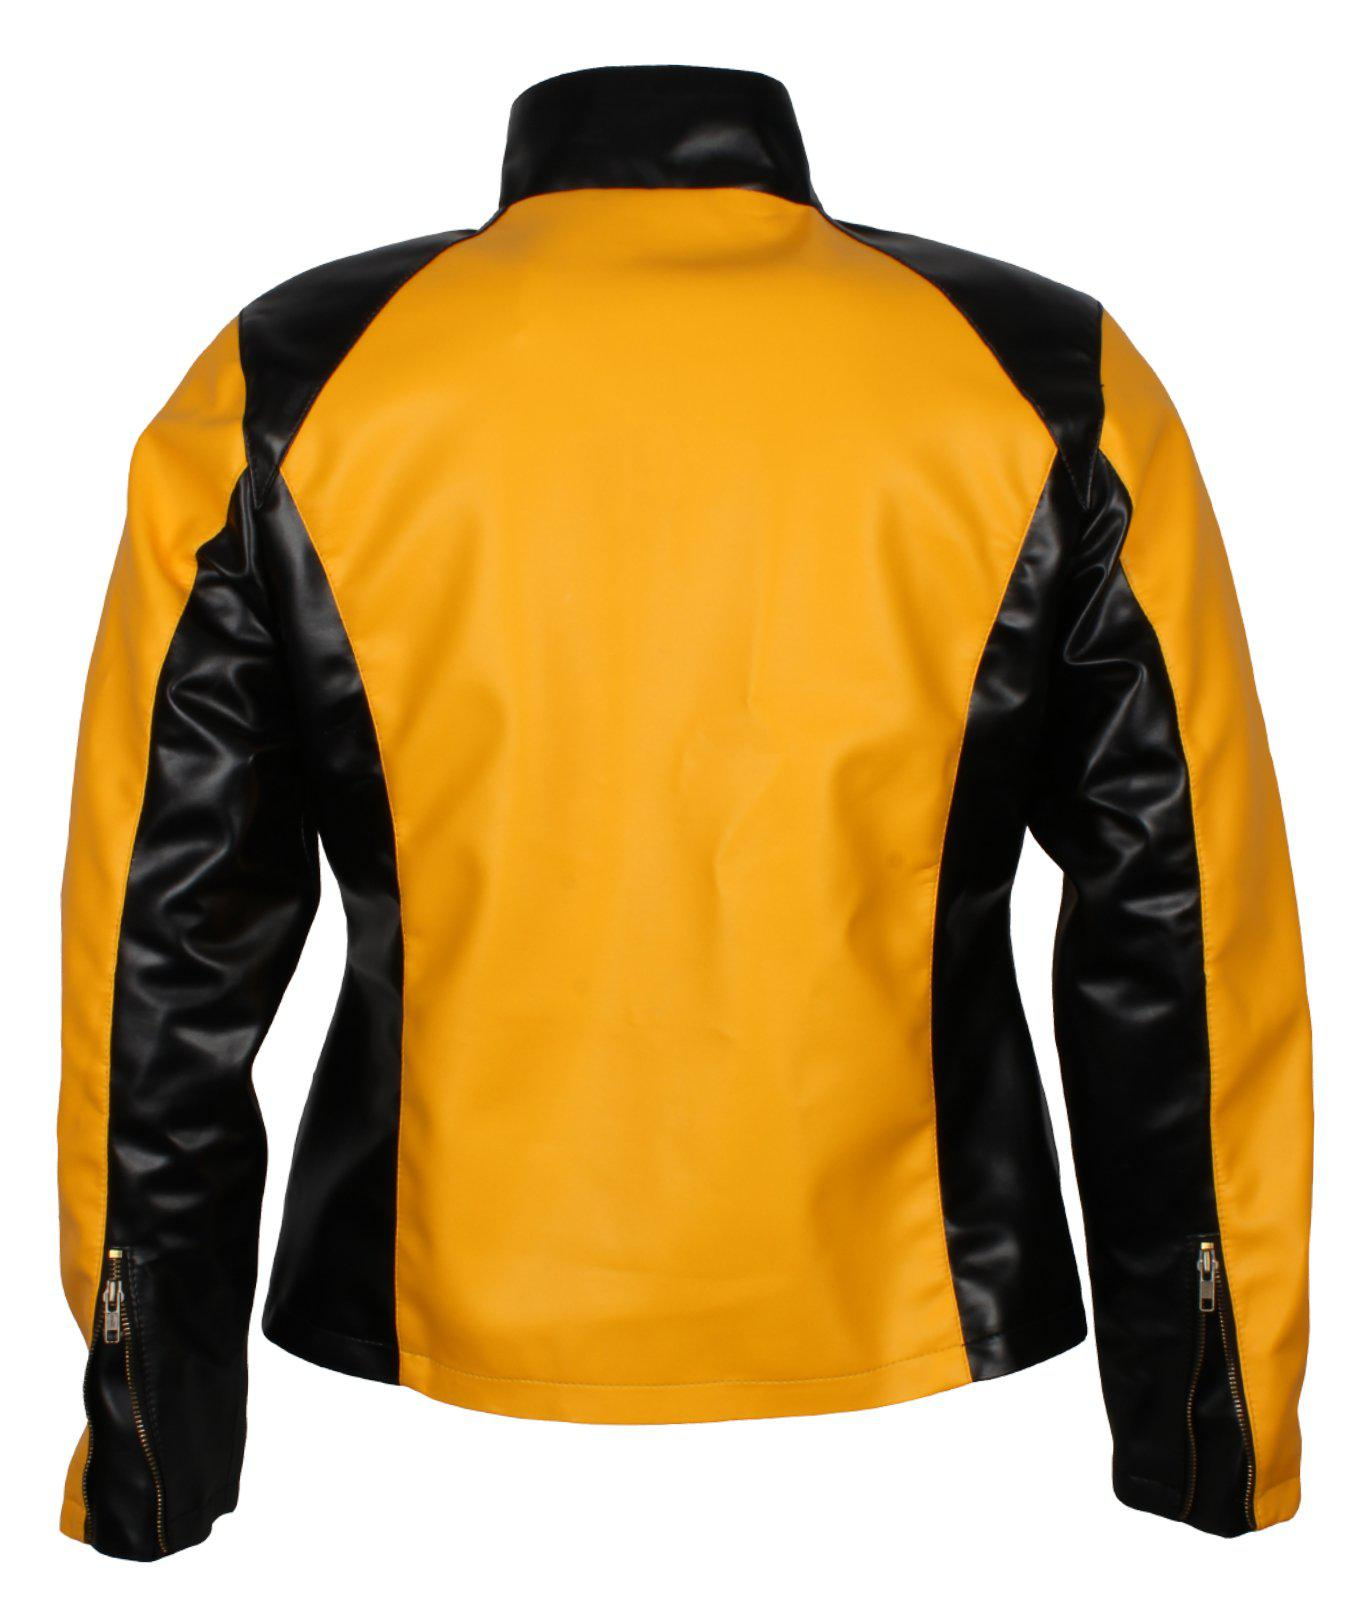 Infamous 2 Cole Macgrath Cosplay Costume Jacket  Leather Black and Yellow jackets